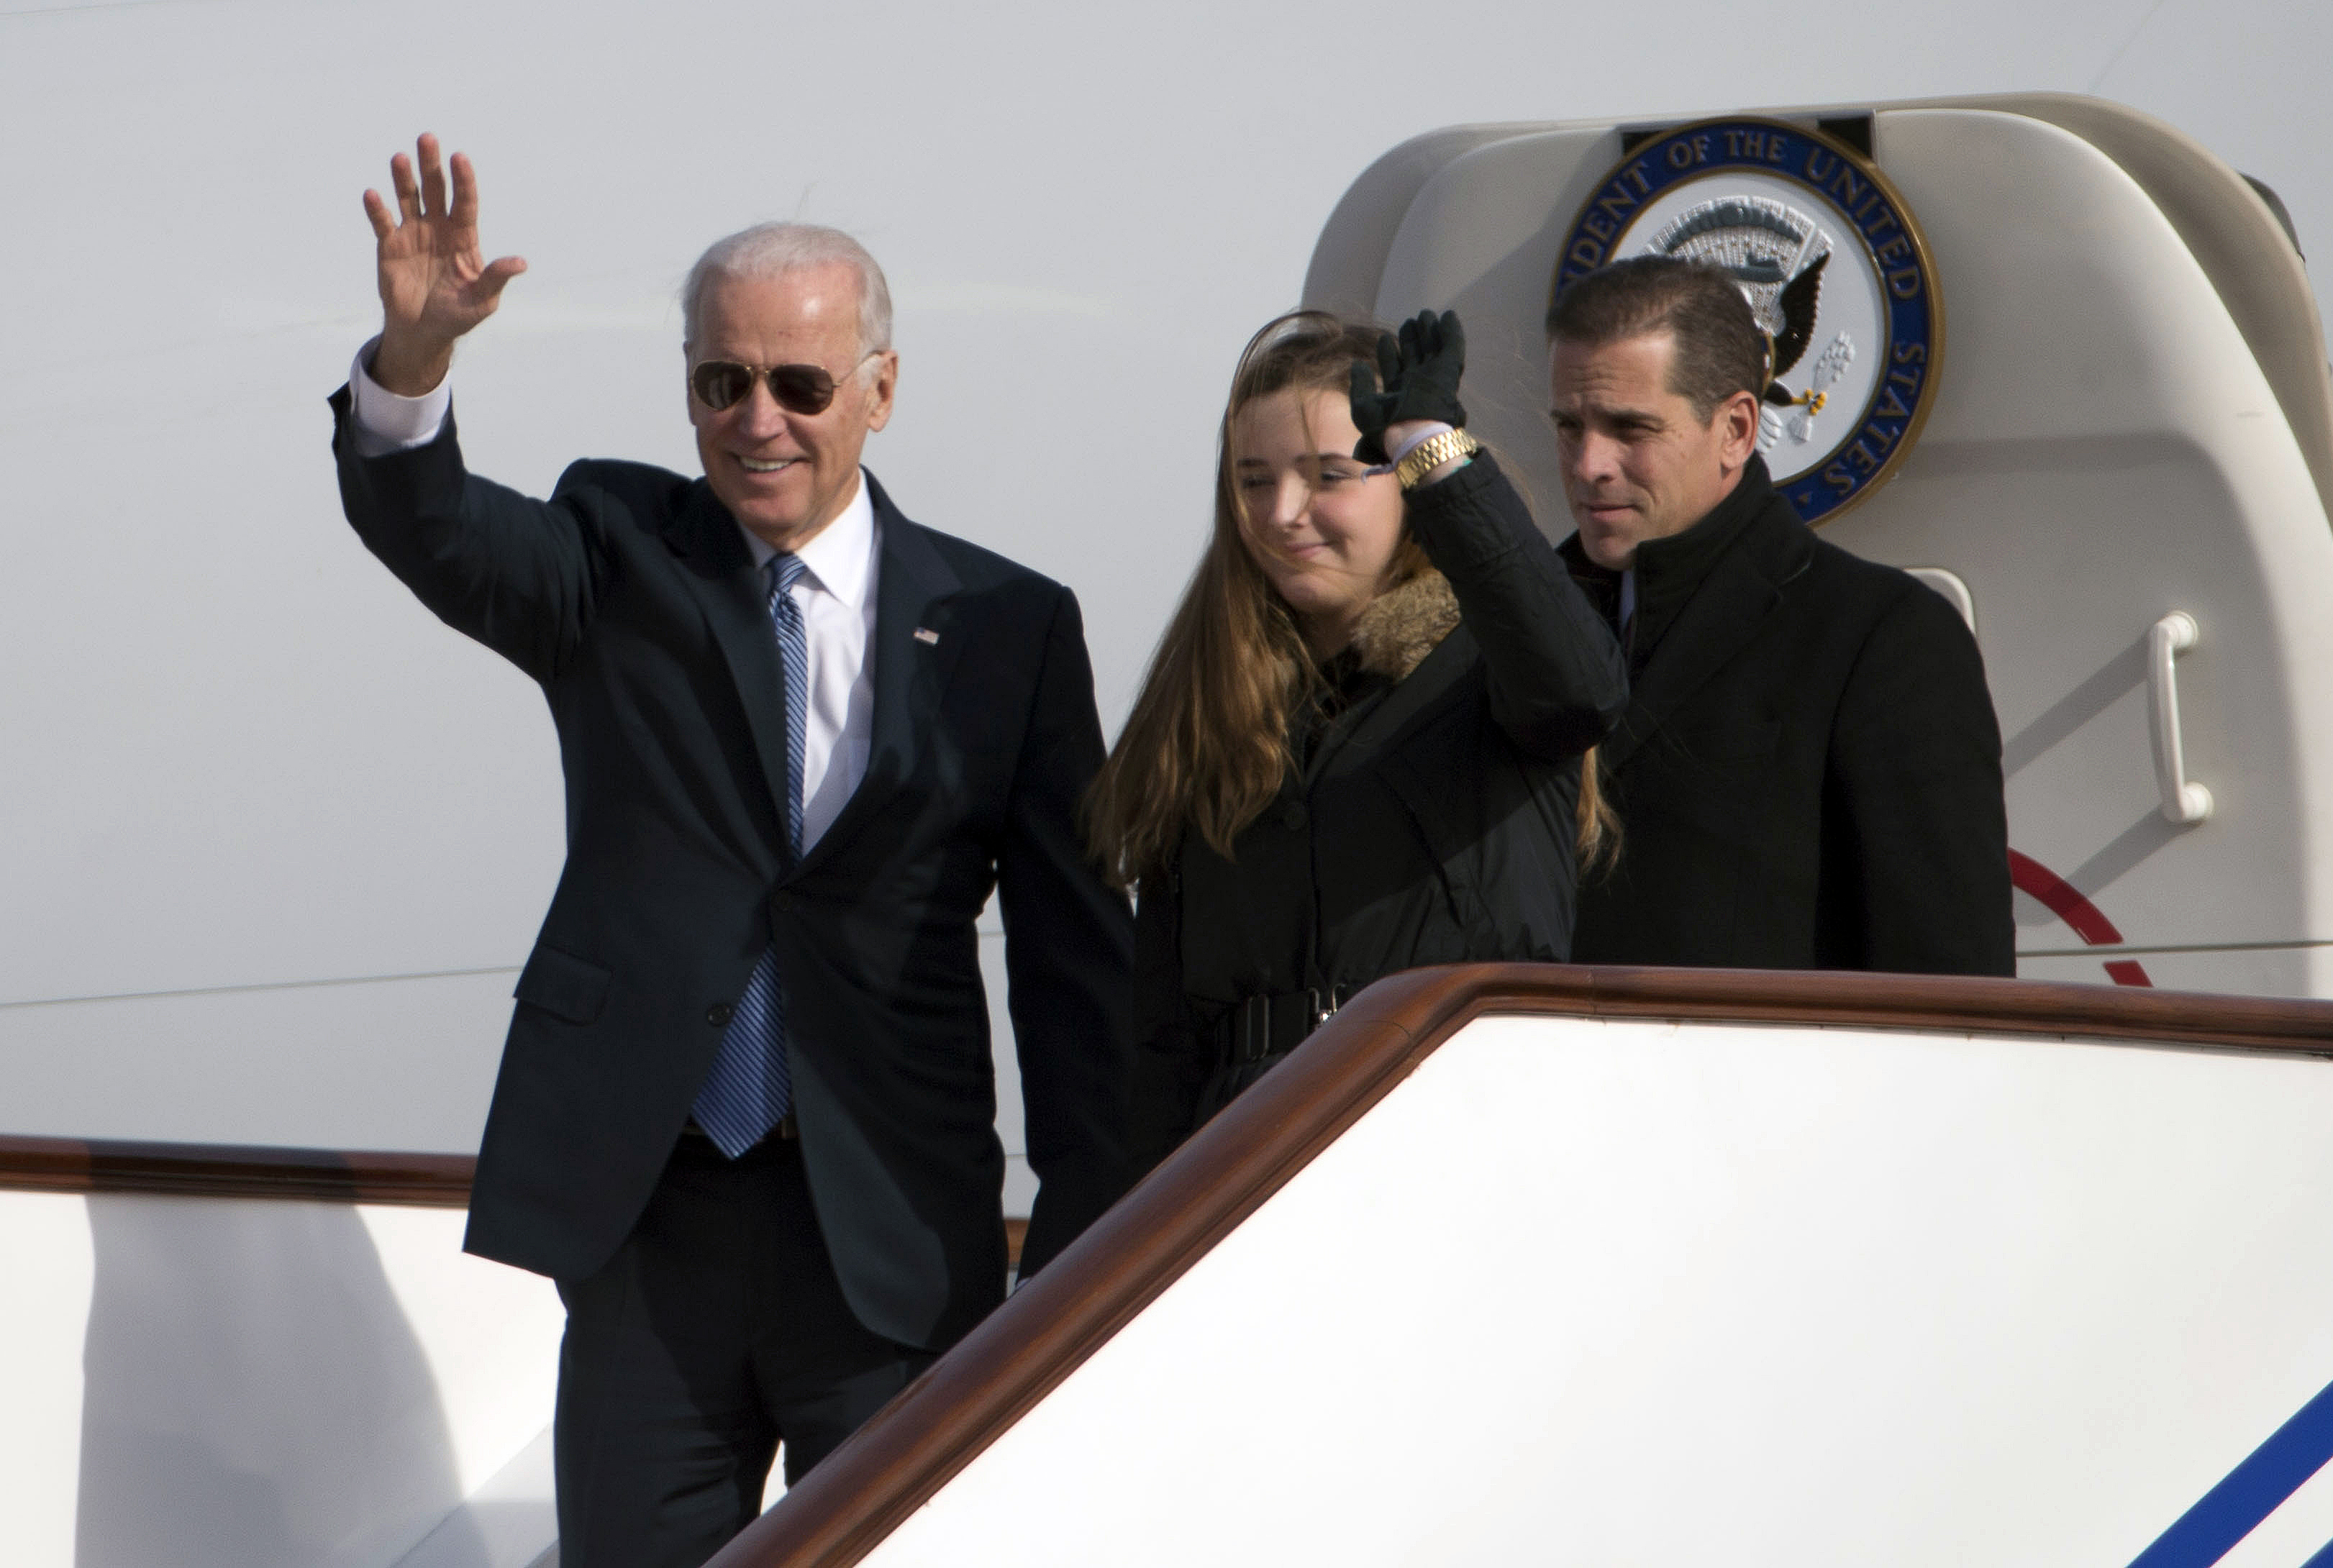 US Vice President Joe Biden waves as he walks out of Air Force Two with his granddaughter, Finnegan Biden (C) and son Hunter Biden (R) upon their arrival in Beijing on December 4, 2013. Biden arrived in Beijing on Decmber 4 amid rising friction over a Chinese air zone, needing to tread between bolstering ties with the rising power and underscoring alliances with Tokyo and Seoul (NG HAN GUAN/AFP via Getty Images)